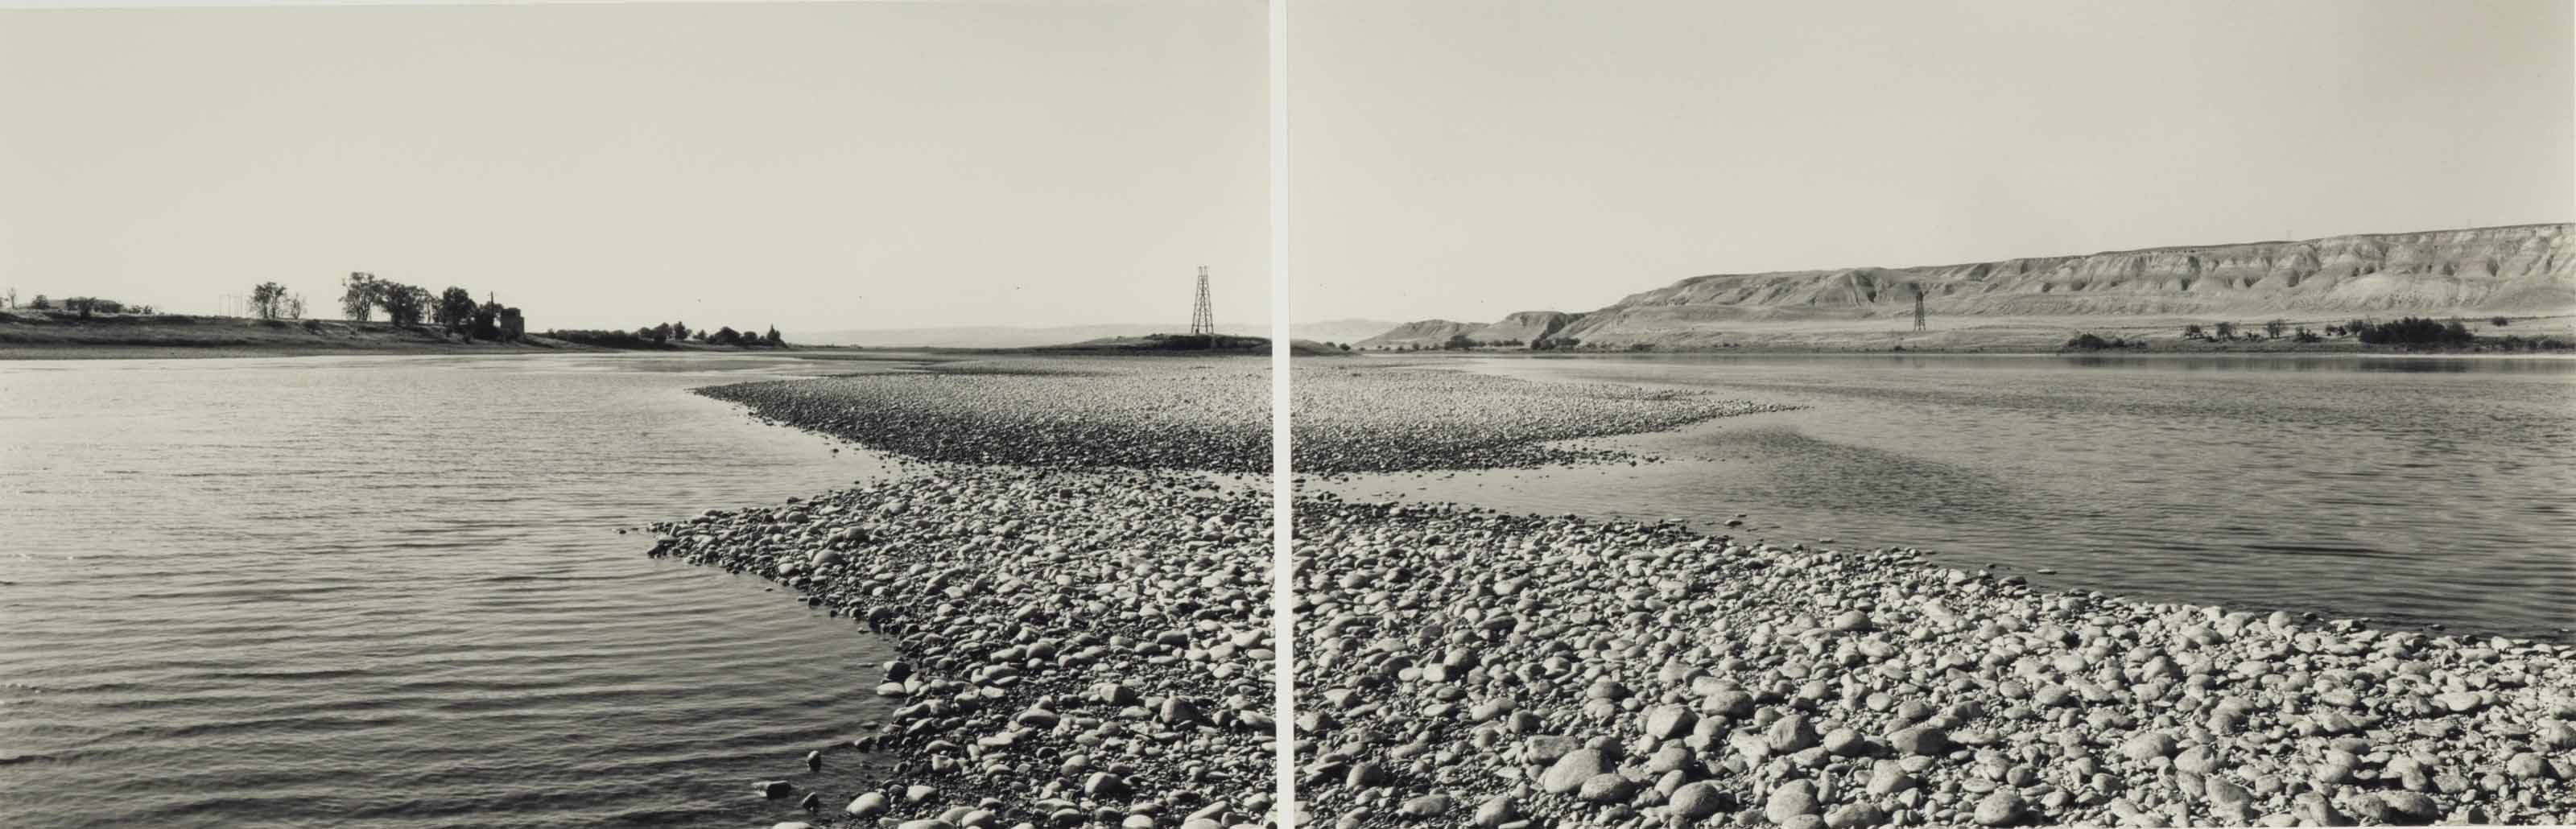 The Hanford Stretch: Hanford Town Site, 1992–1993